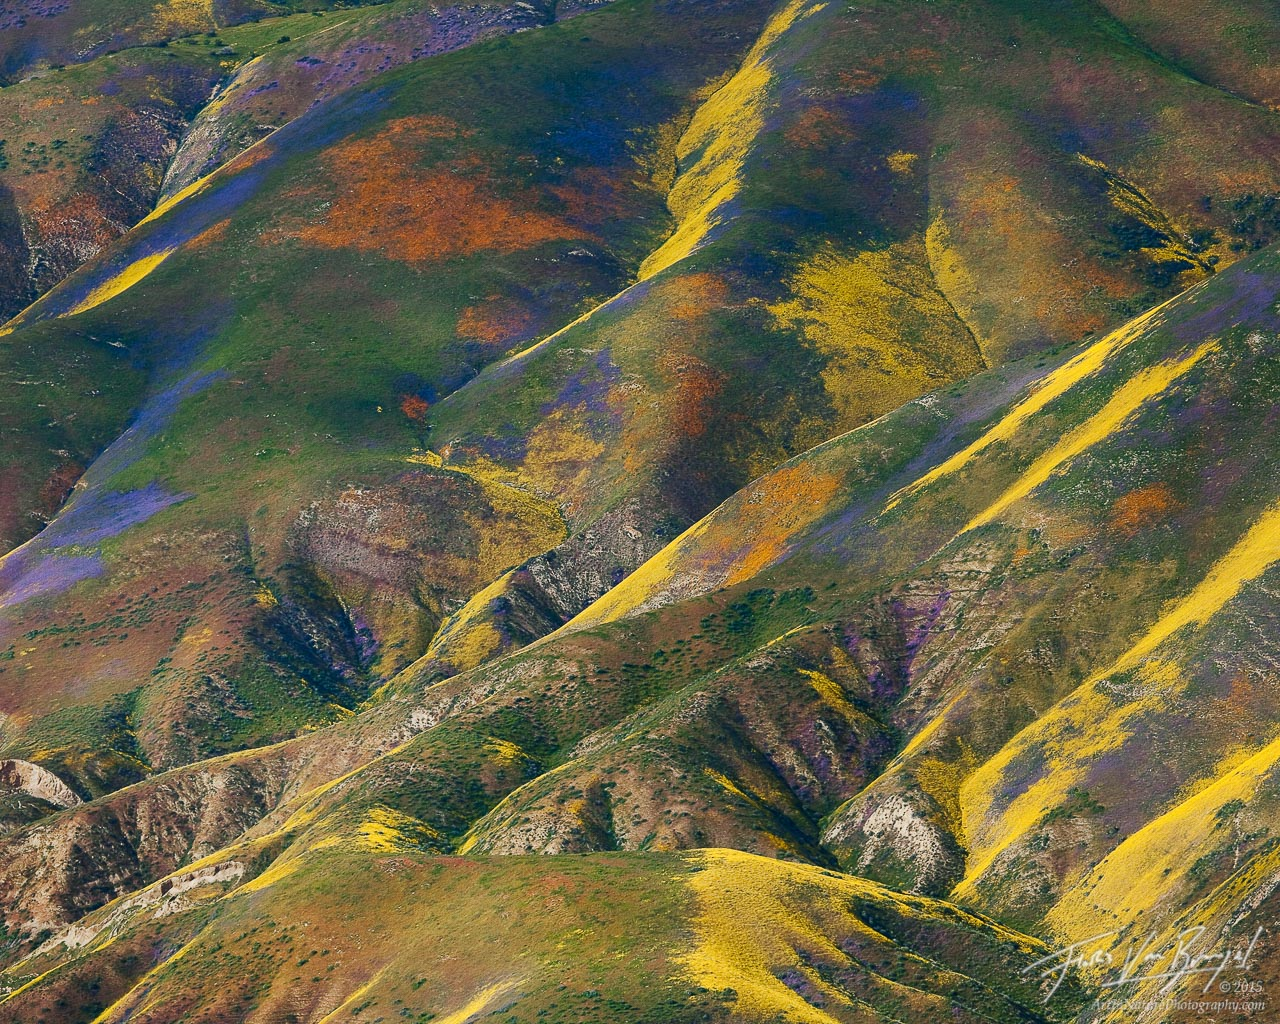 Temblor Range Flowers Aerial, Carrizo Plains National Monument, California, monet's palette, wildflower, 2010, spring, photo